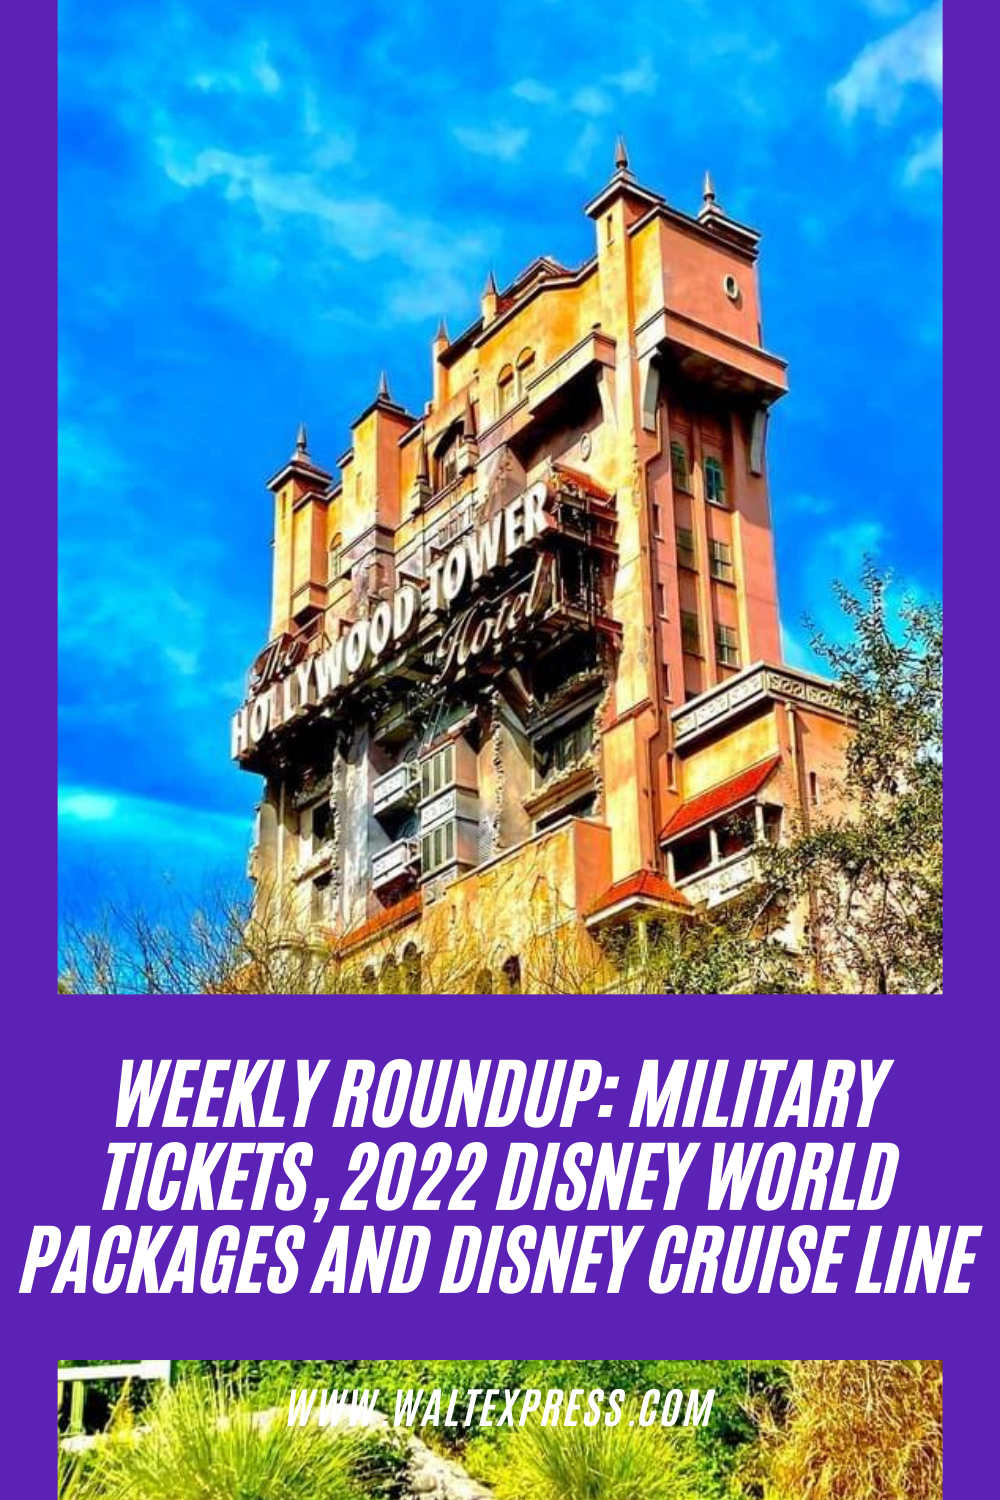 Weekly Roundup: Military Tickets, 2022 Disney World Packages and Disney Cruise Line